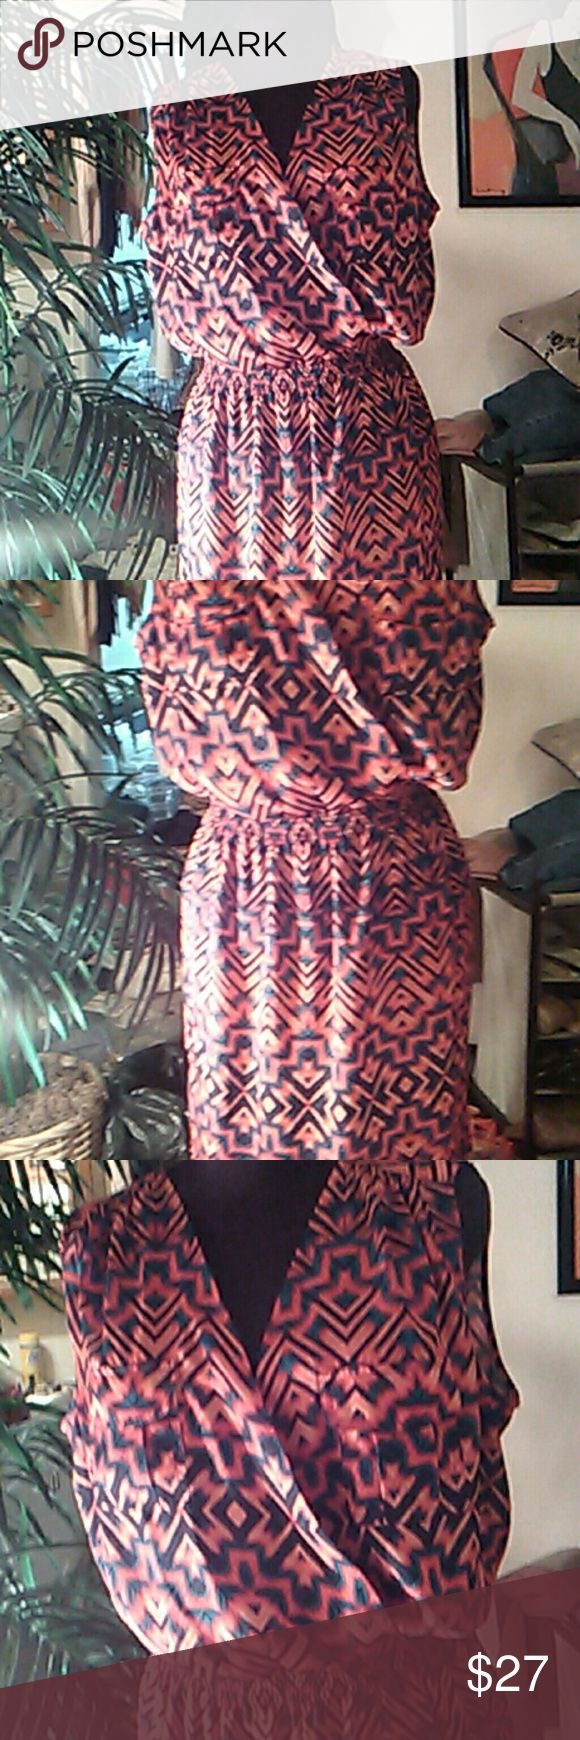 Aztec print multicolor print Crossover , sleeveless dress in an super cute and Colorful Aztec PRINT Great for any occasion Anne Klein Dresses Midi